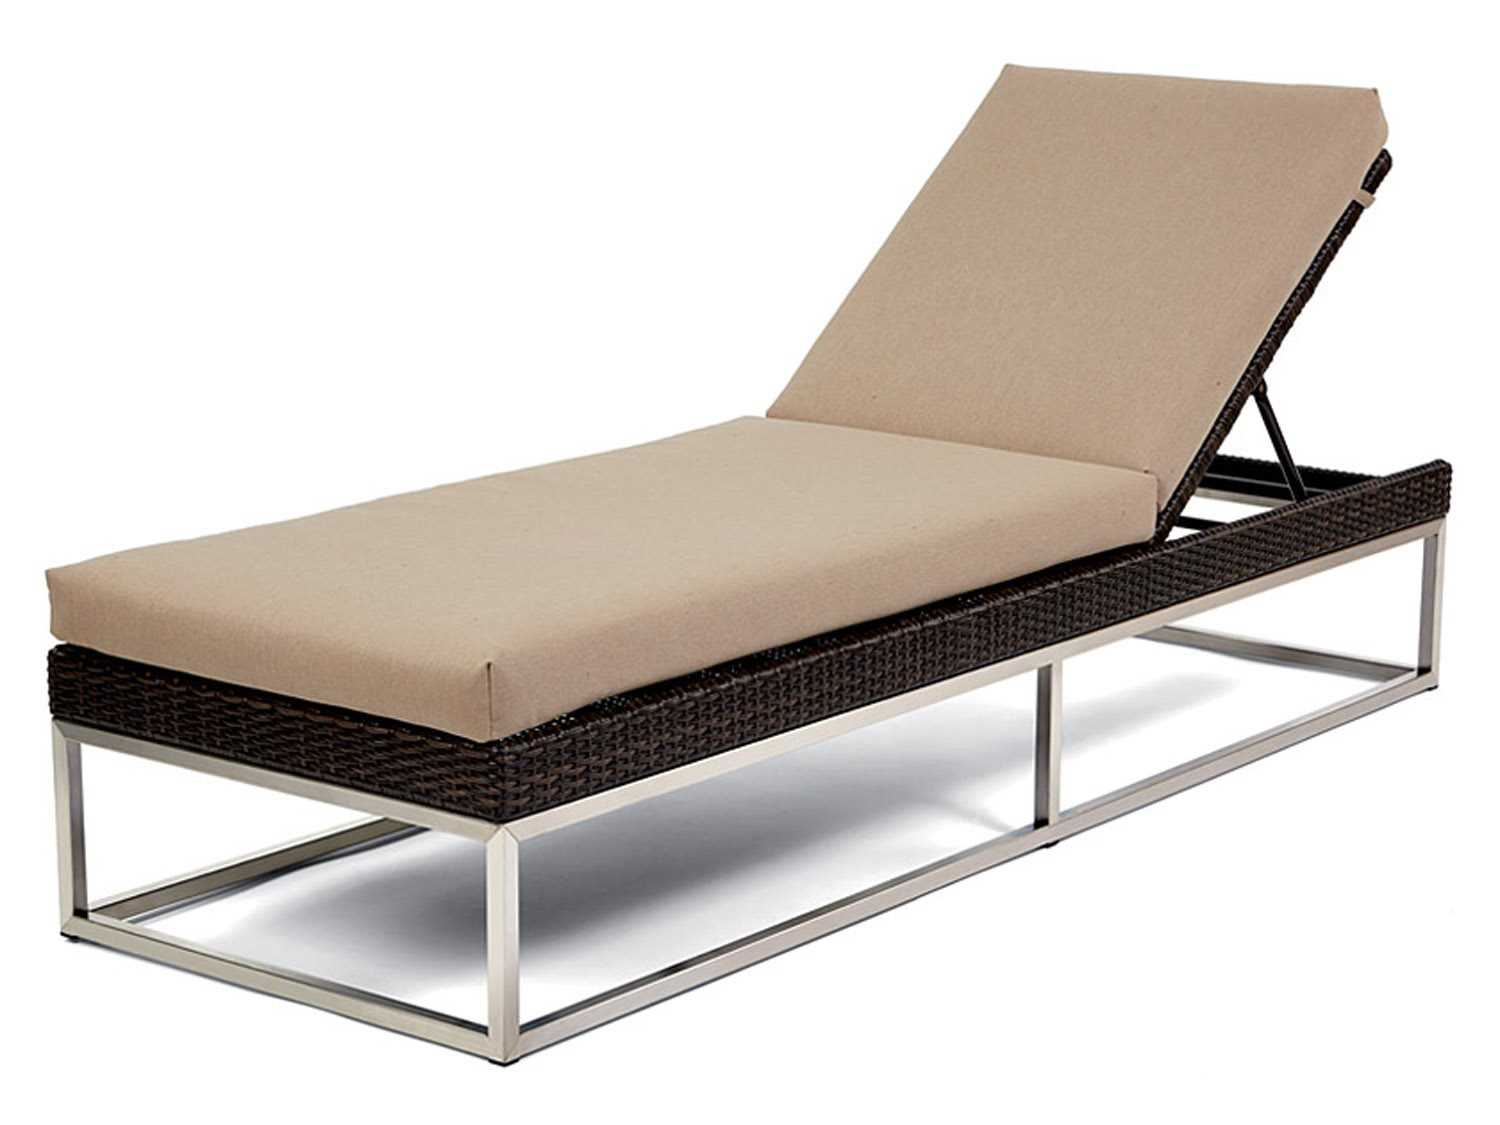 Caluco Mirabella Wicker Cushion Side Adjustable Chaise